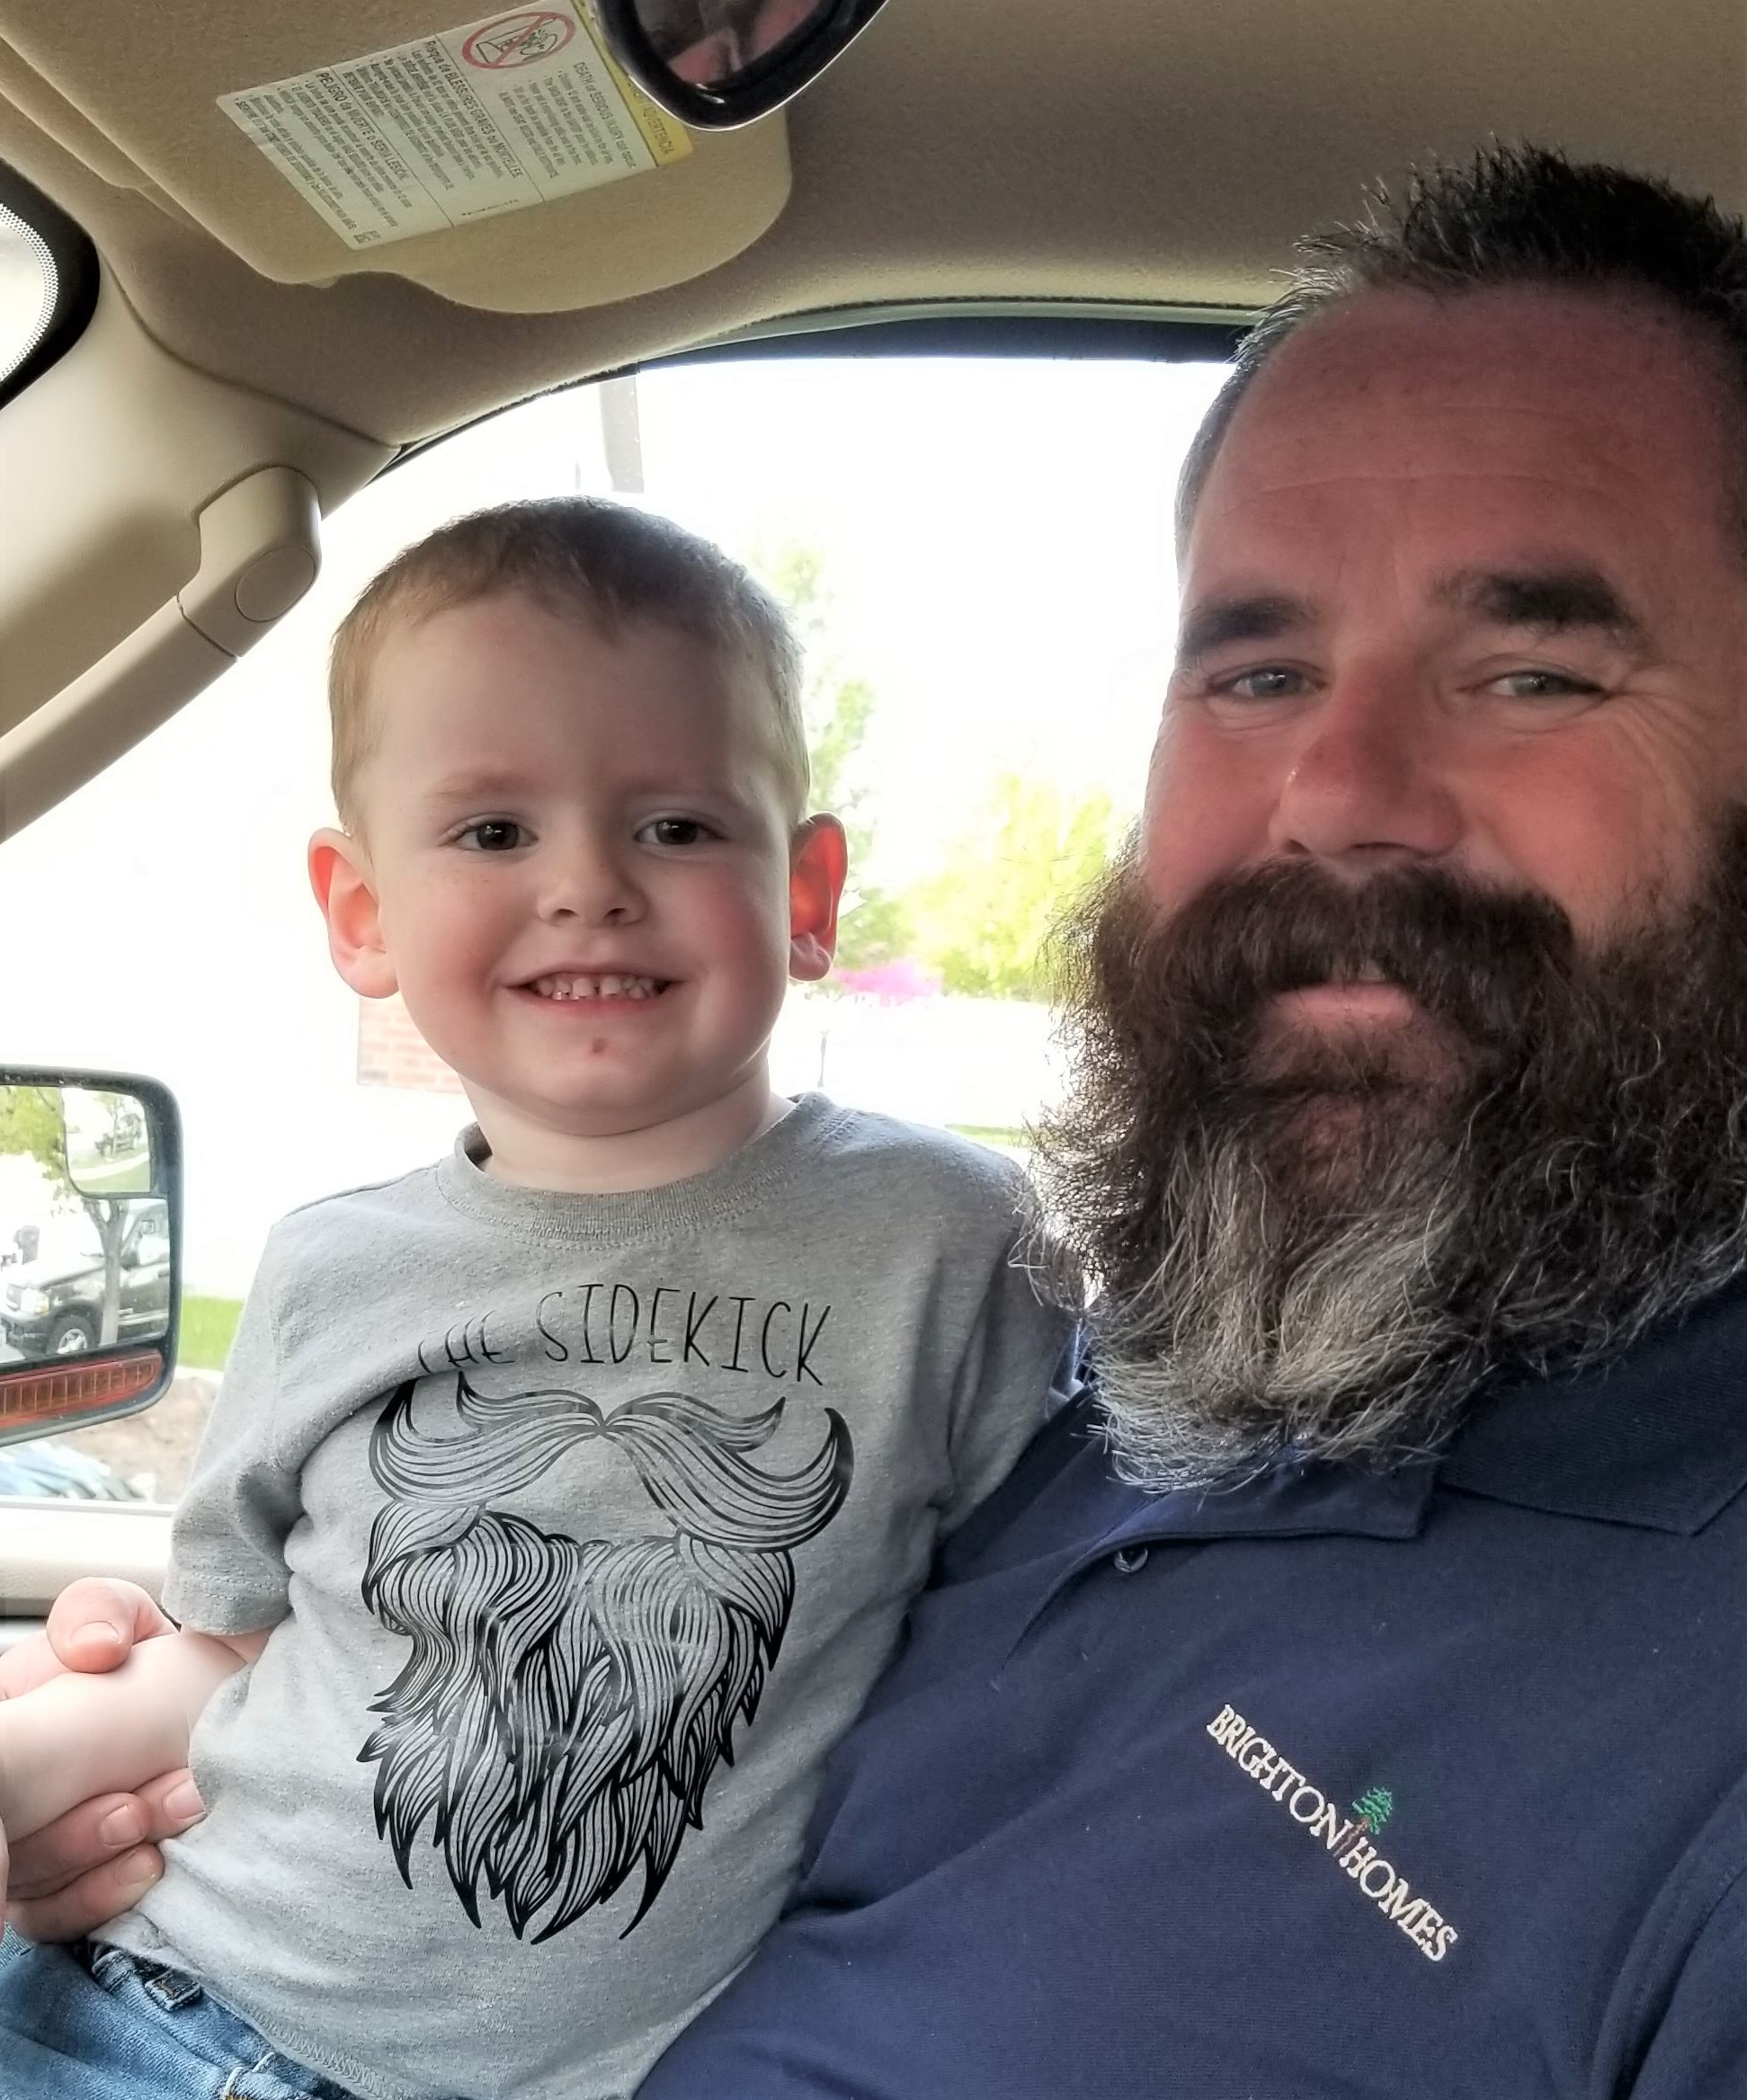 This The Sidekick, Toddler Beard T-Shirt is perfect for all those little ones that have a dad with a beard. Details for creating your own are on the blog.